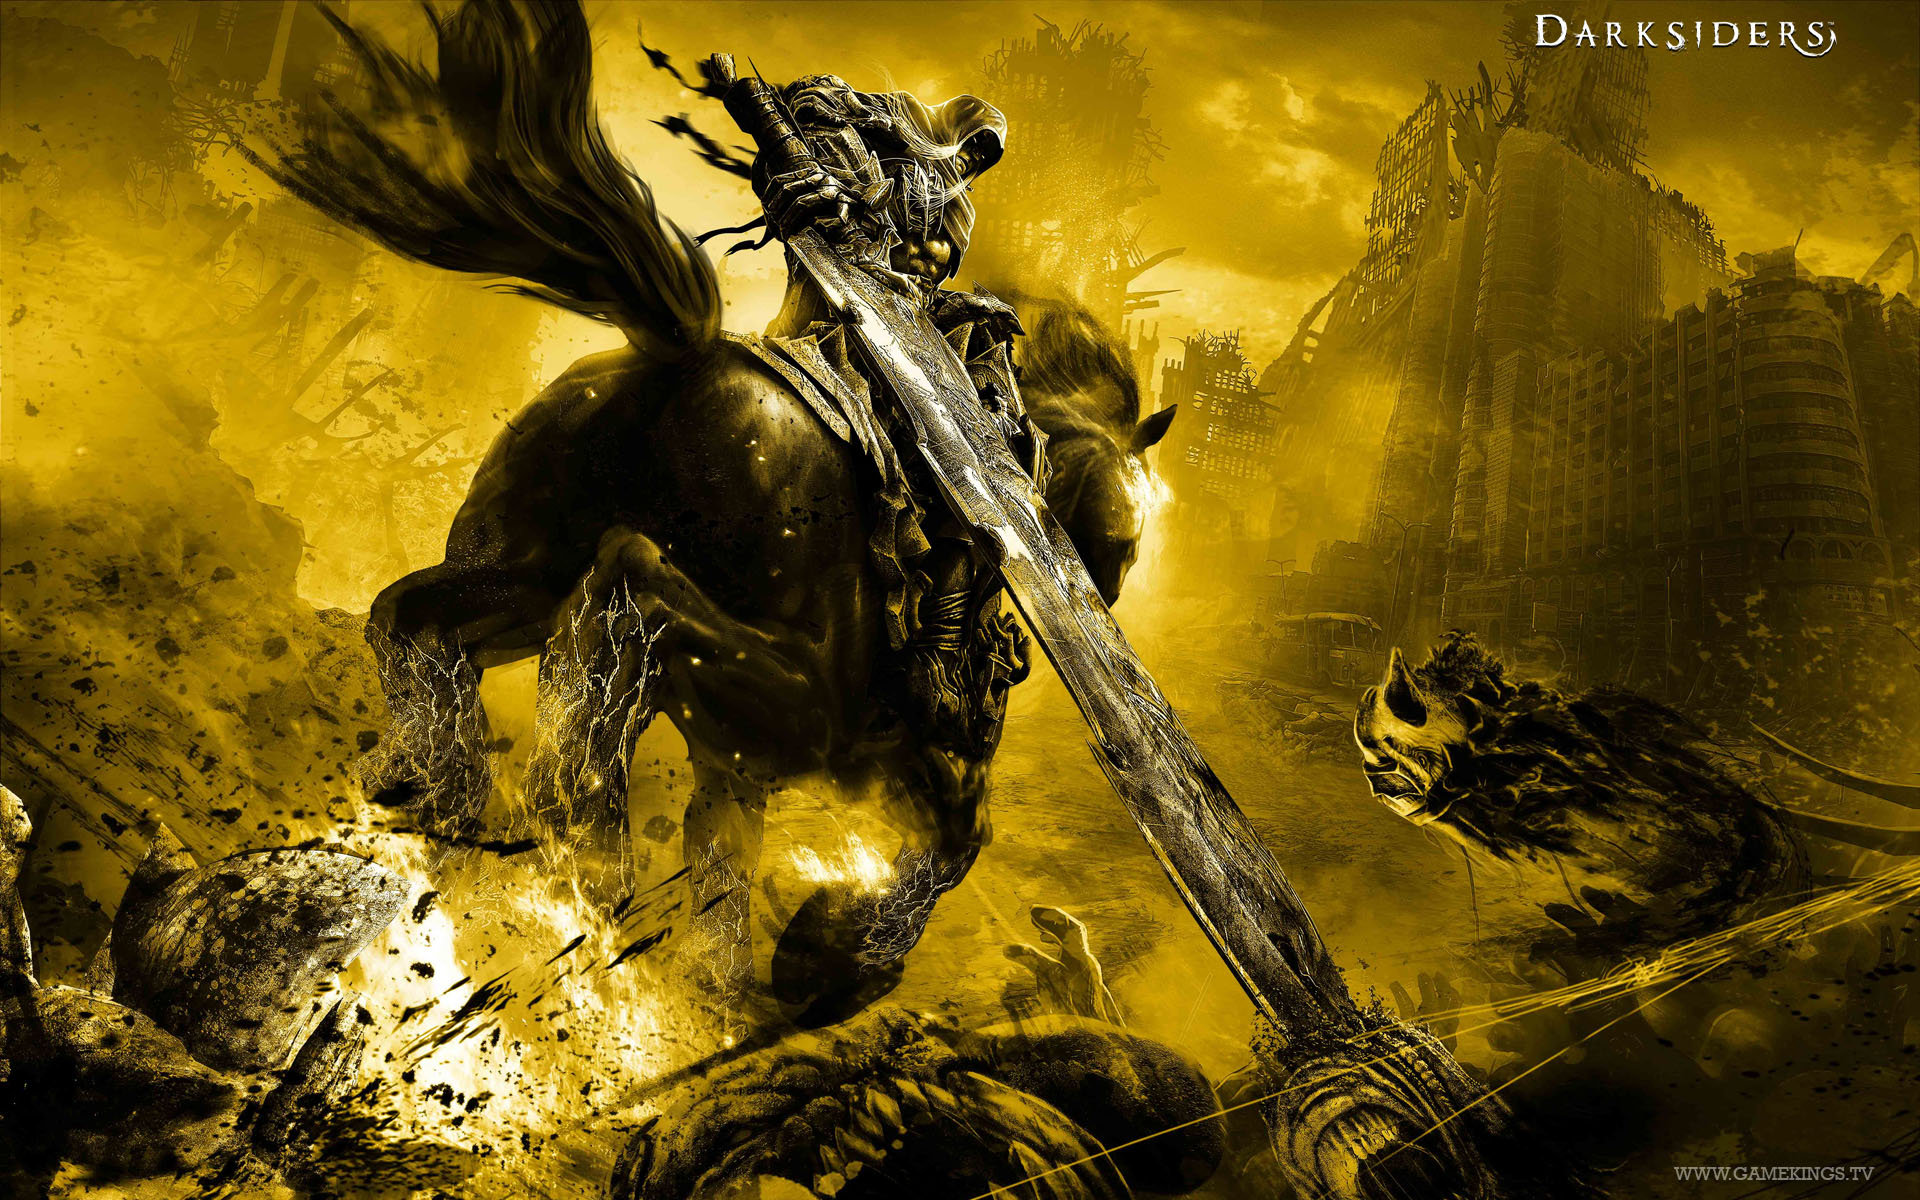 Download Darksiders Wallpaper 1920x1200 Wallpoper 275440 1920x1200